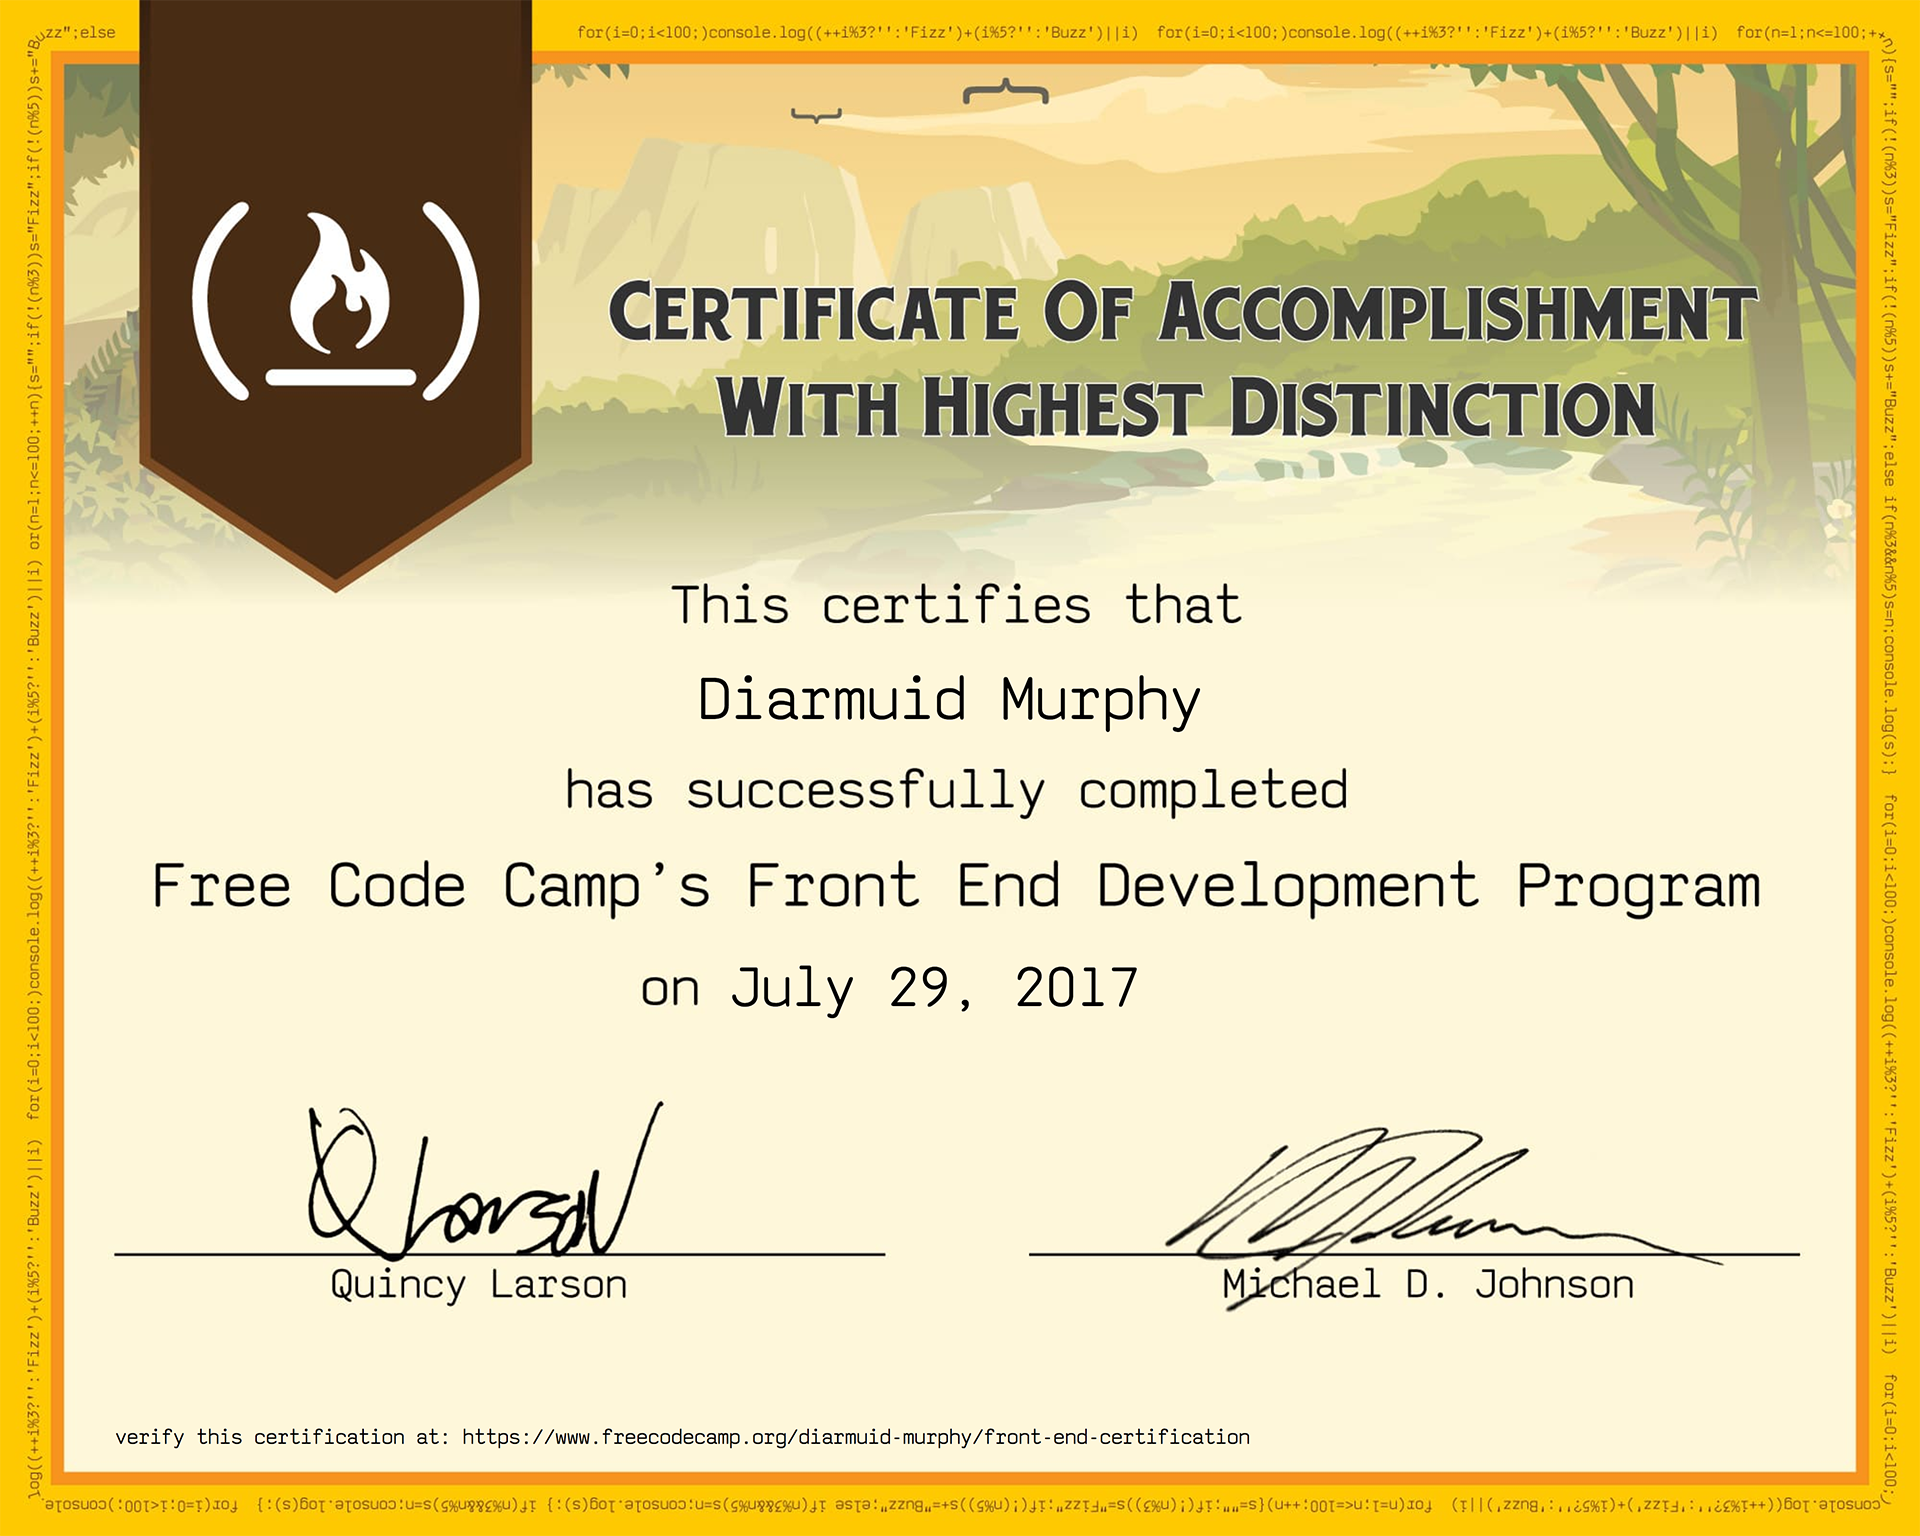 Diarmuid Murphy freeCodeCamp Front End Development Certification